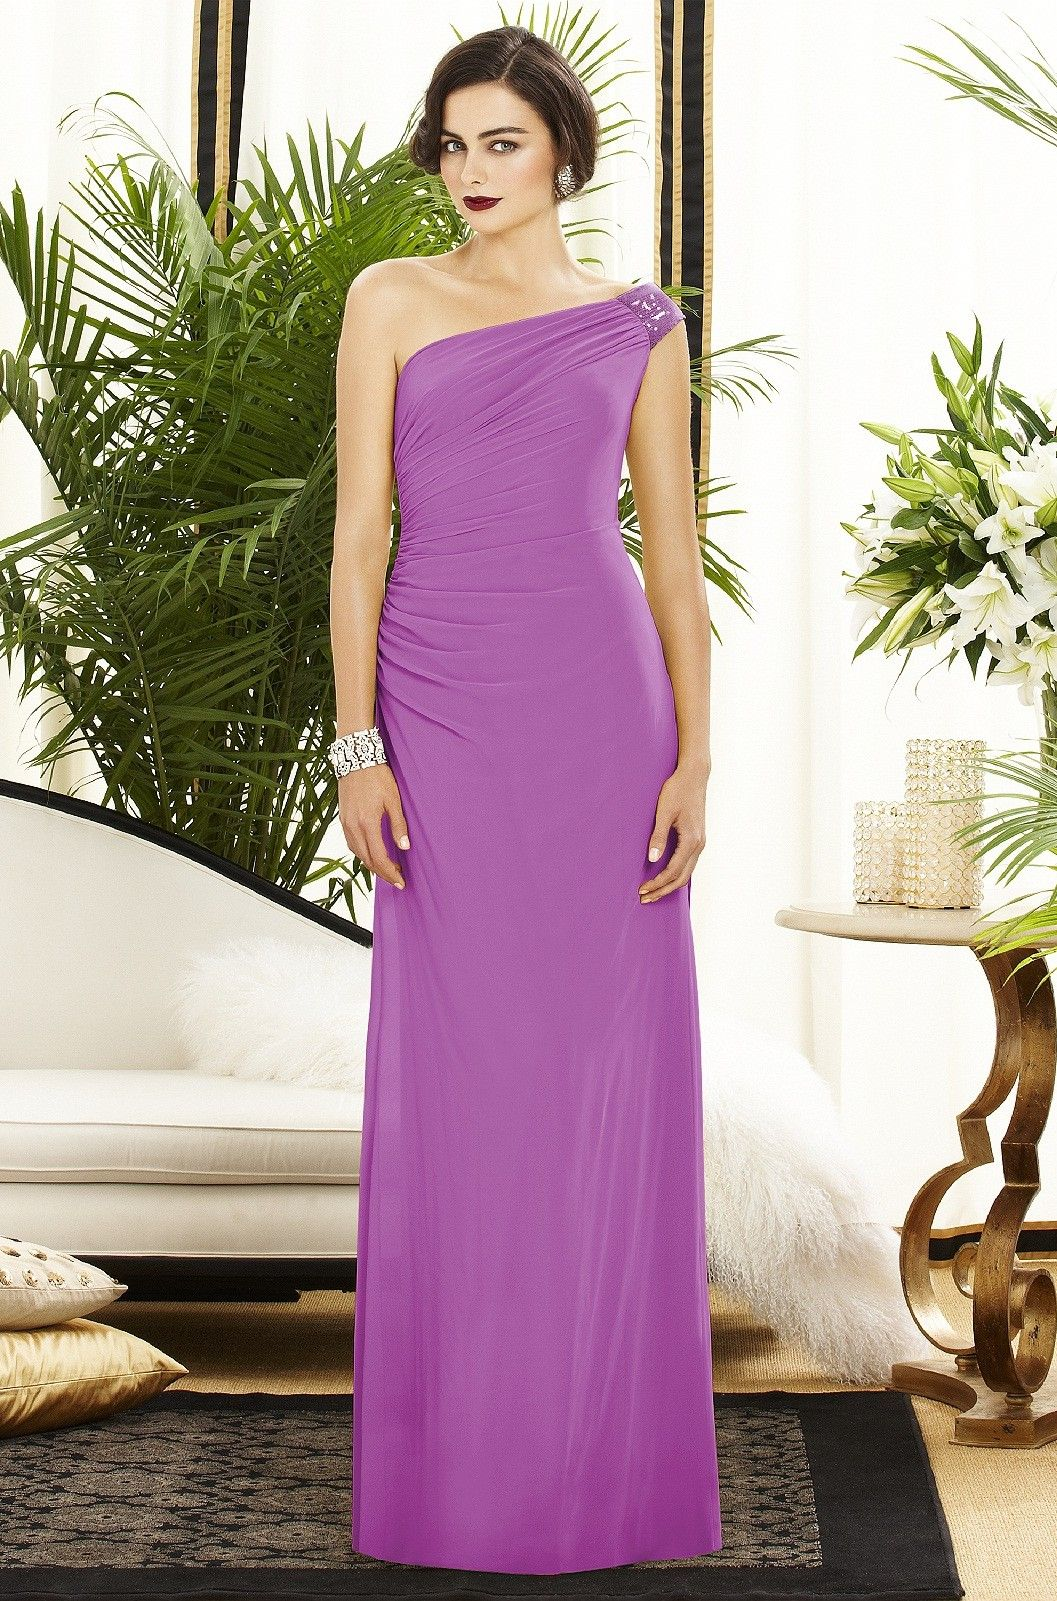 Orchid Bridesmaid Dresses Image collections - Braidsmaid Dress ...